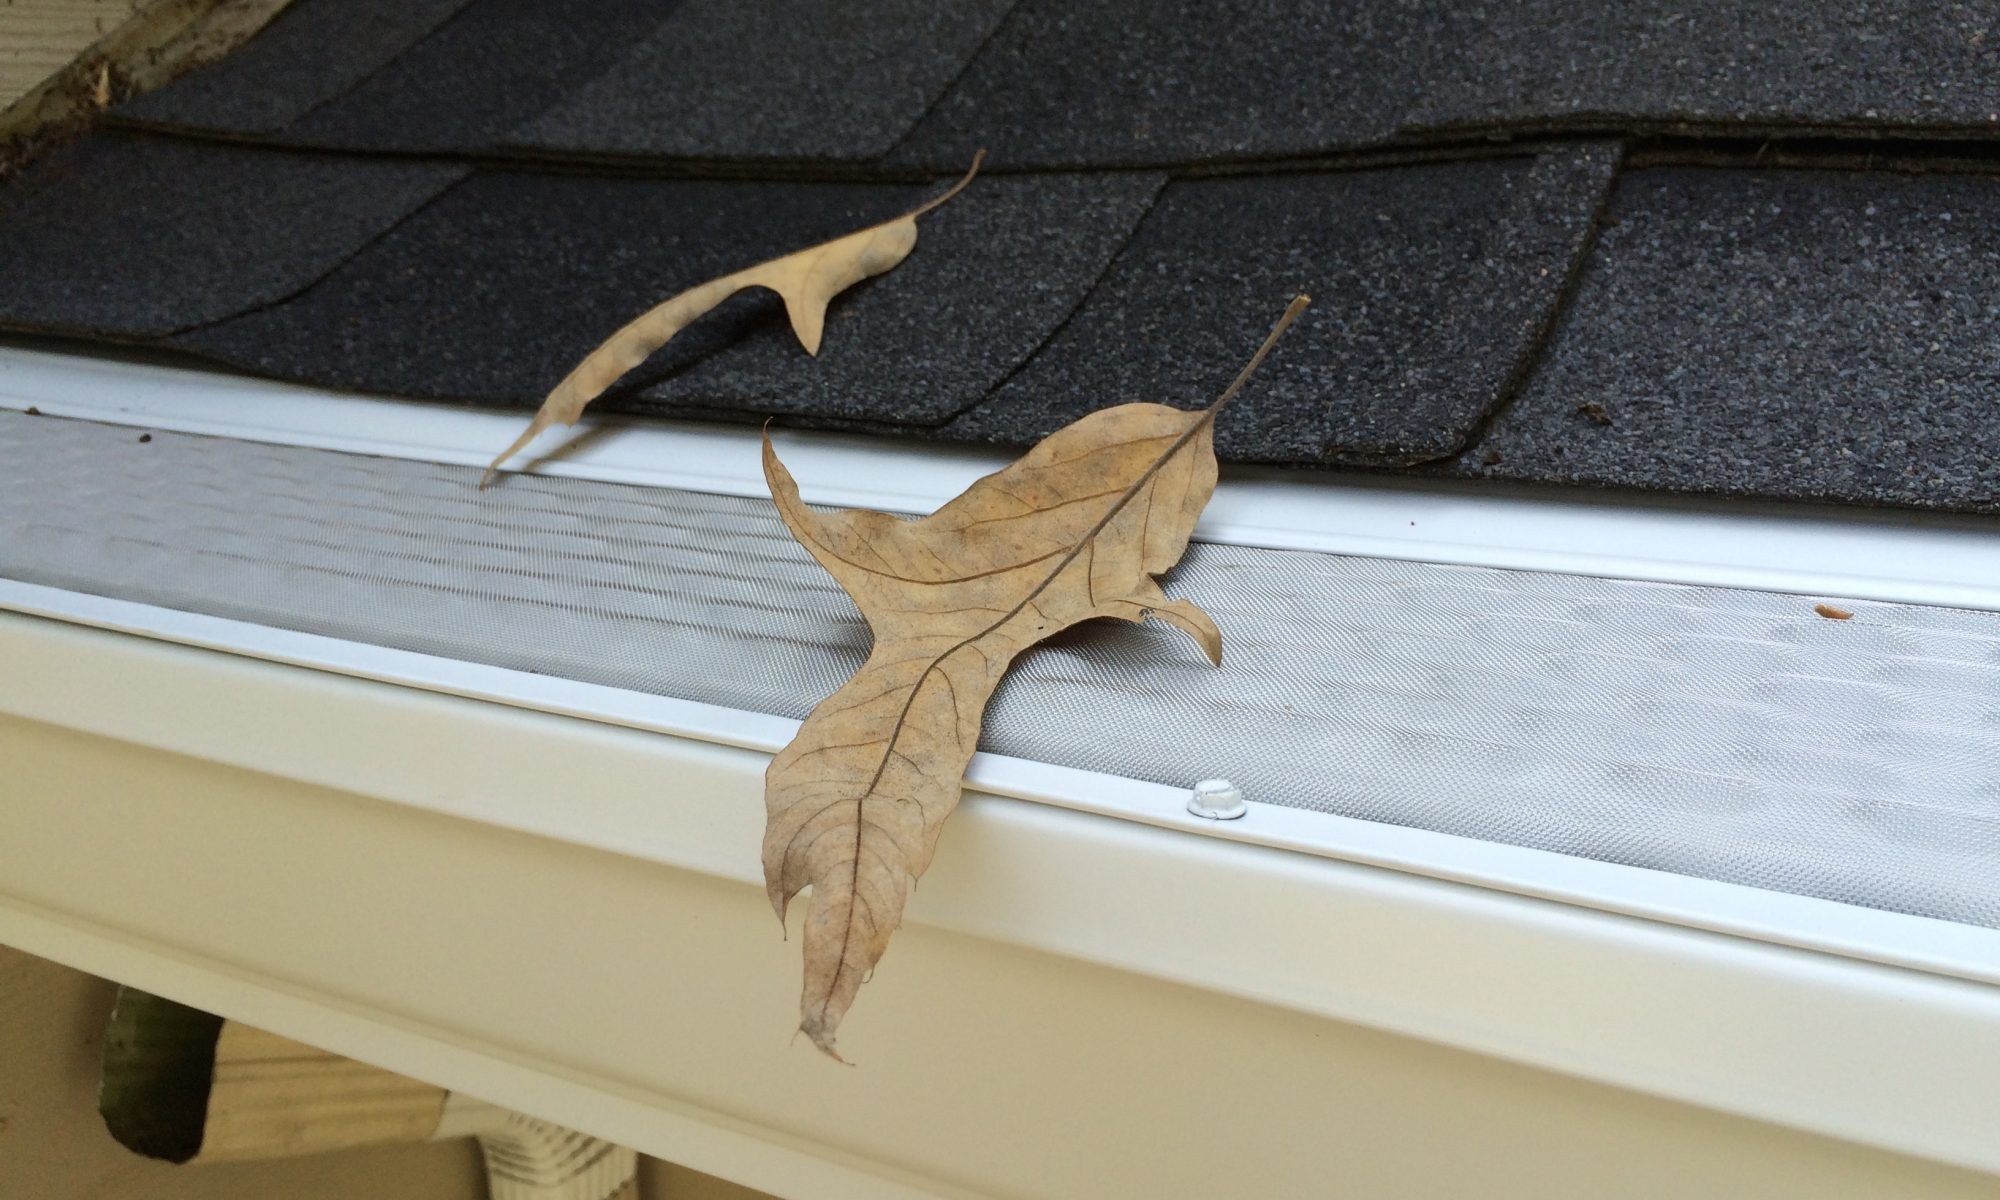 microscreen u.s. gutter guard installed on new 6 inch gutters